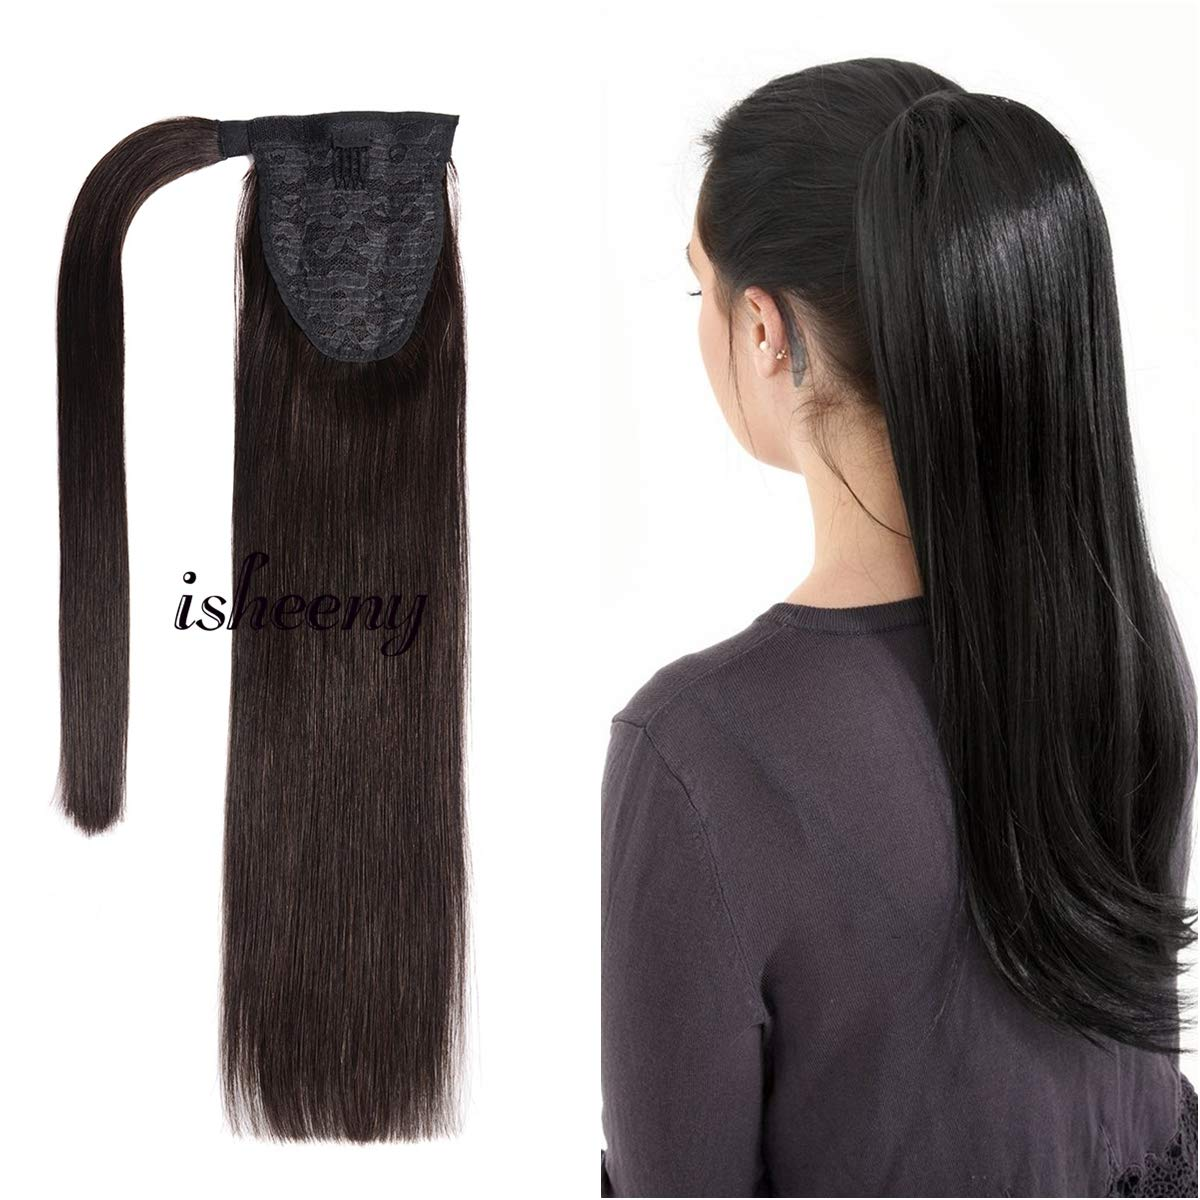 14 Inches Ponytail Hair Extensions Human Hair Piece for Women 1 Piece Hairpiece 60 Grams Wrap Around Ponytail Extensions 1B Color